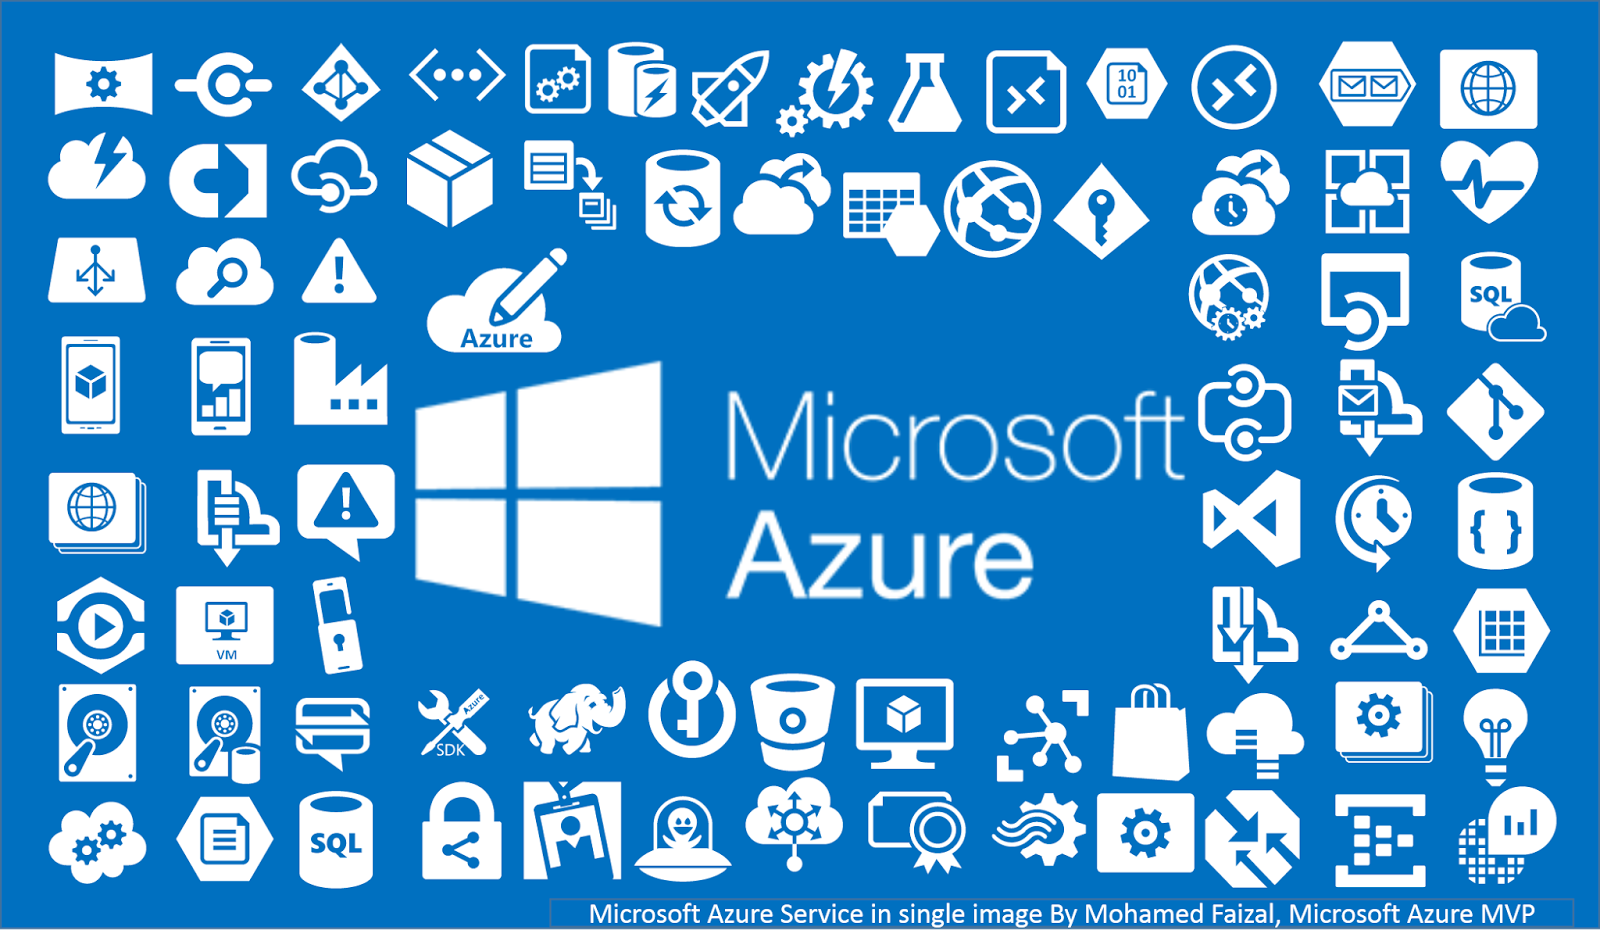 Come Across: Microsoft Azure Service in single image